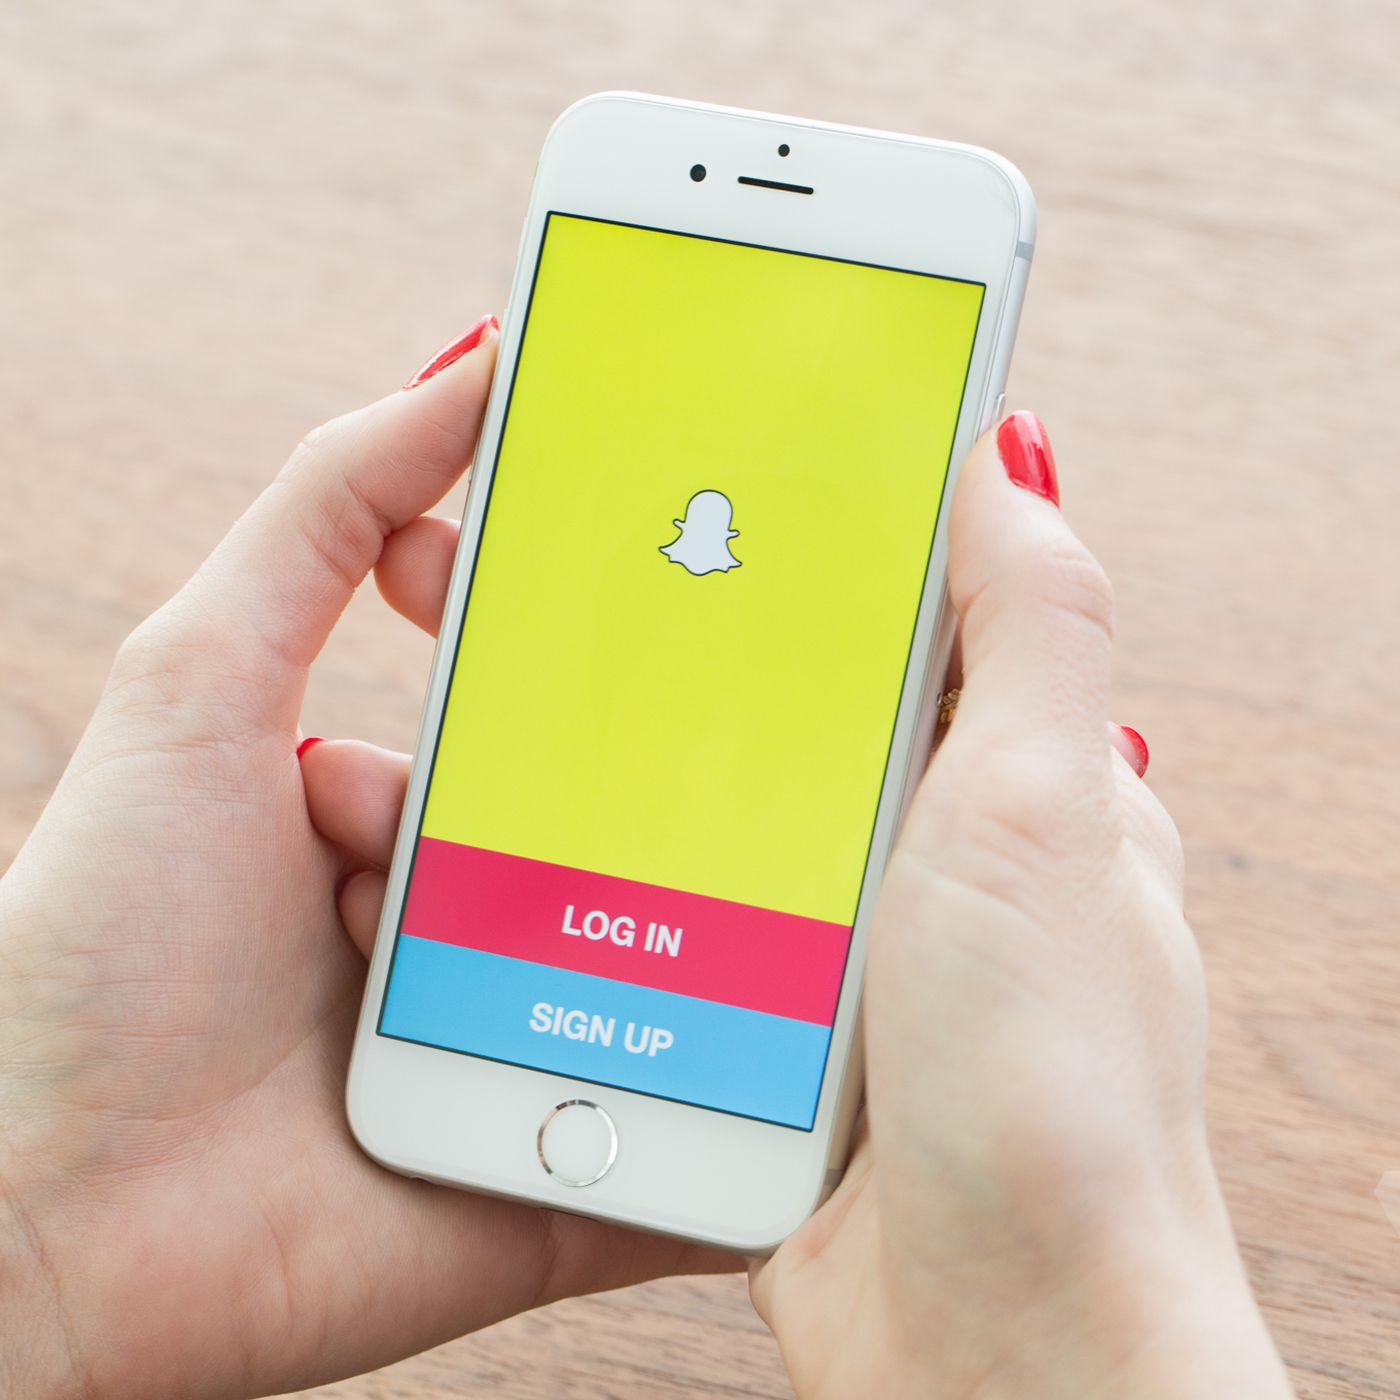 88eff7686226 Snapchat is way more popular on iOS than Android - The Verge